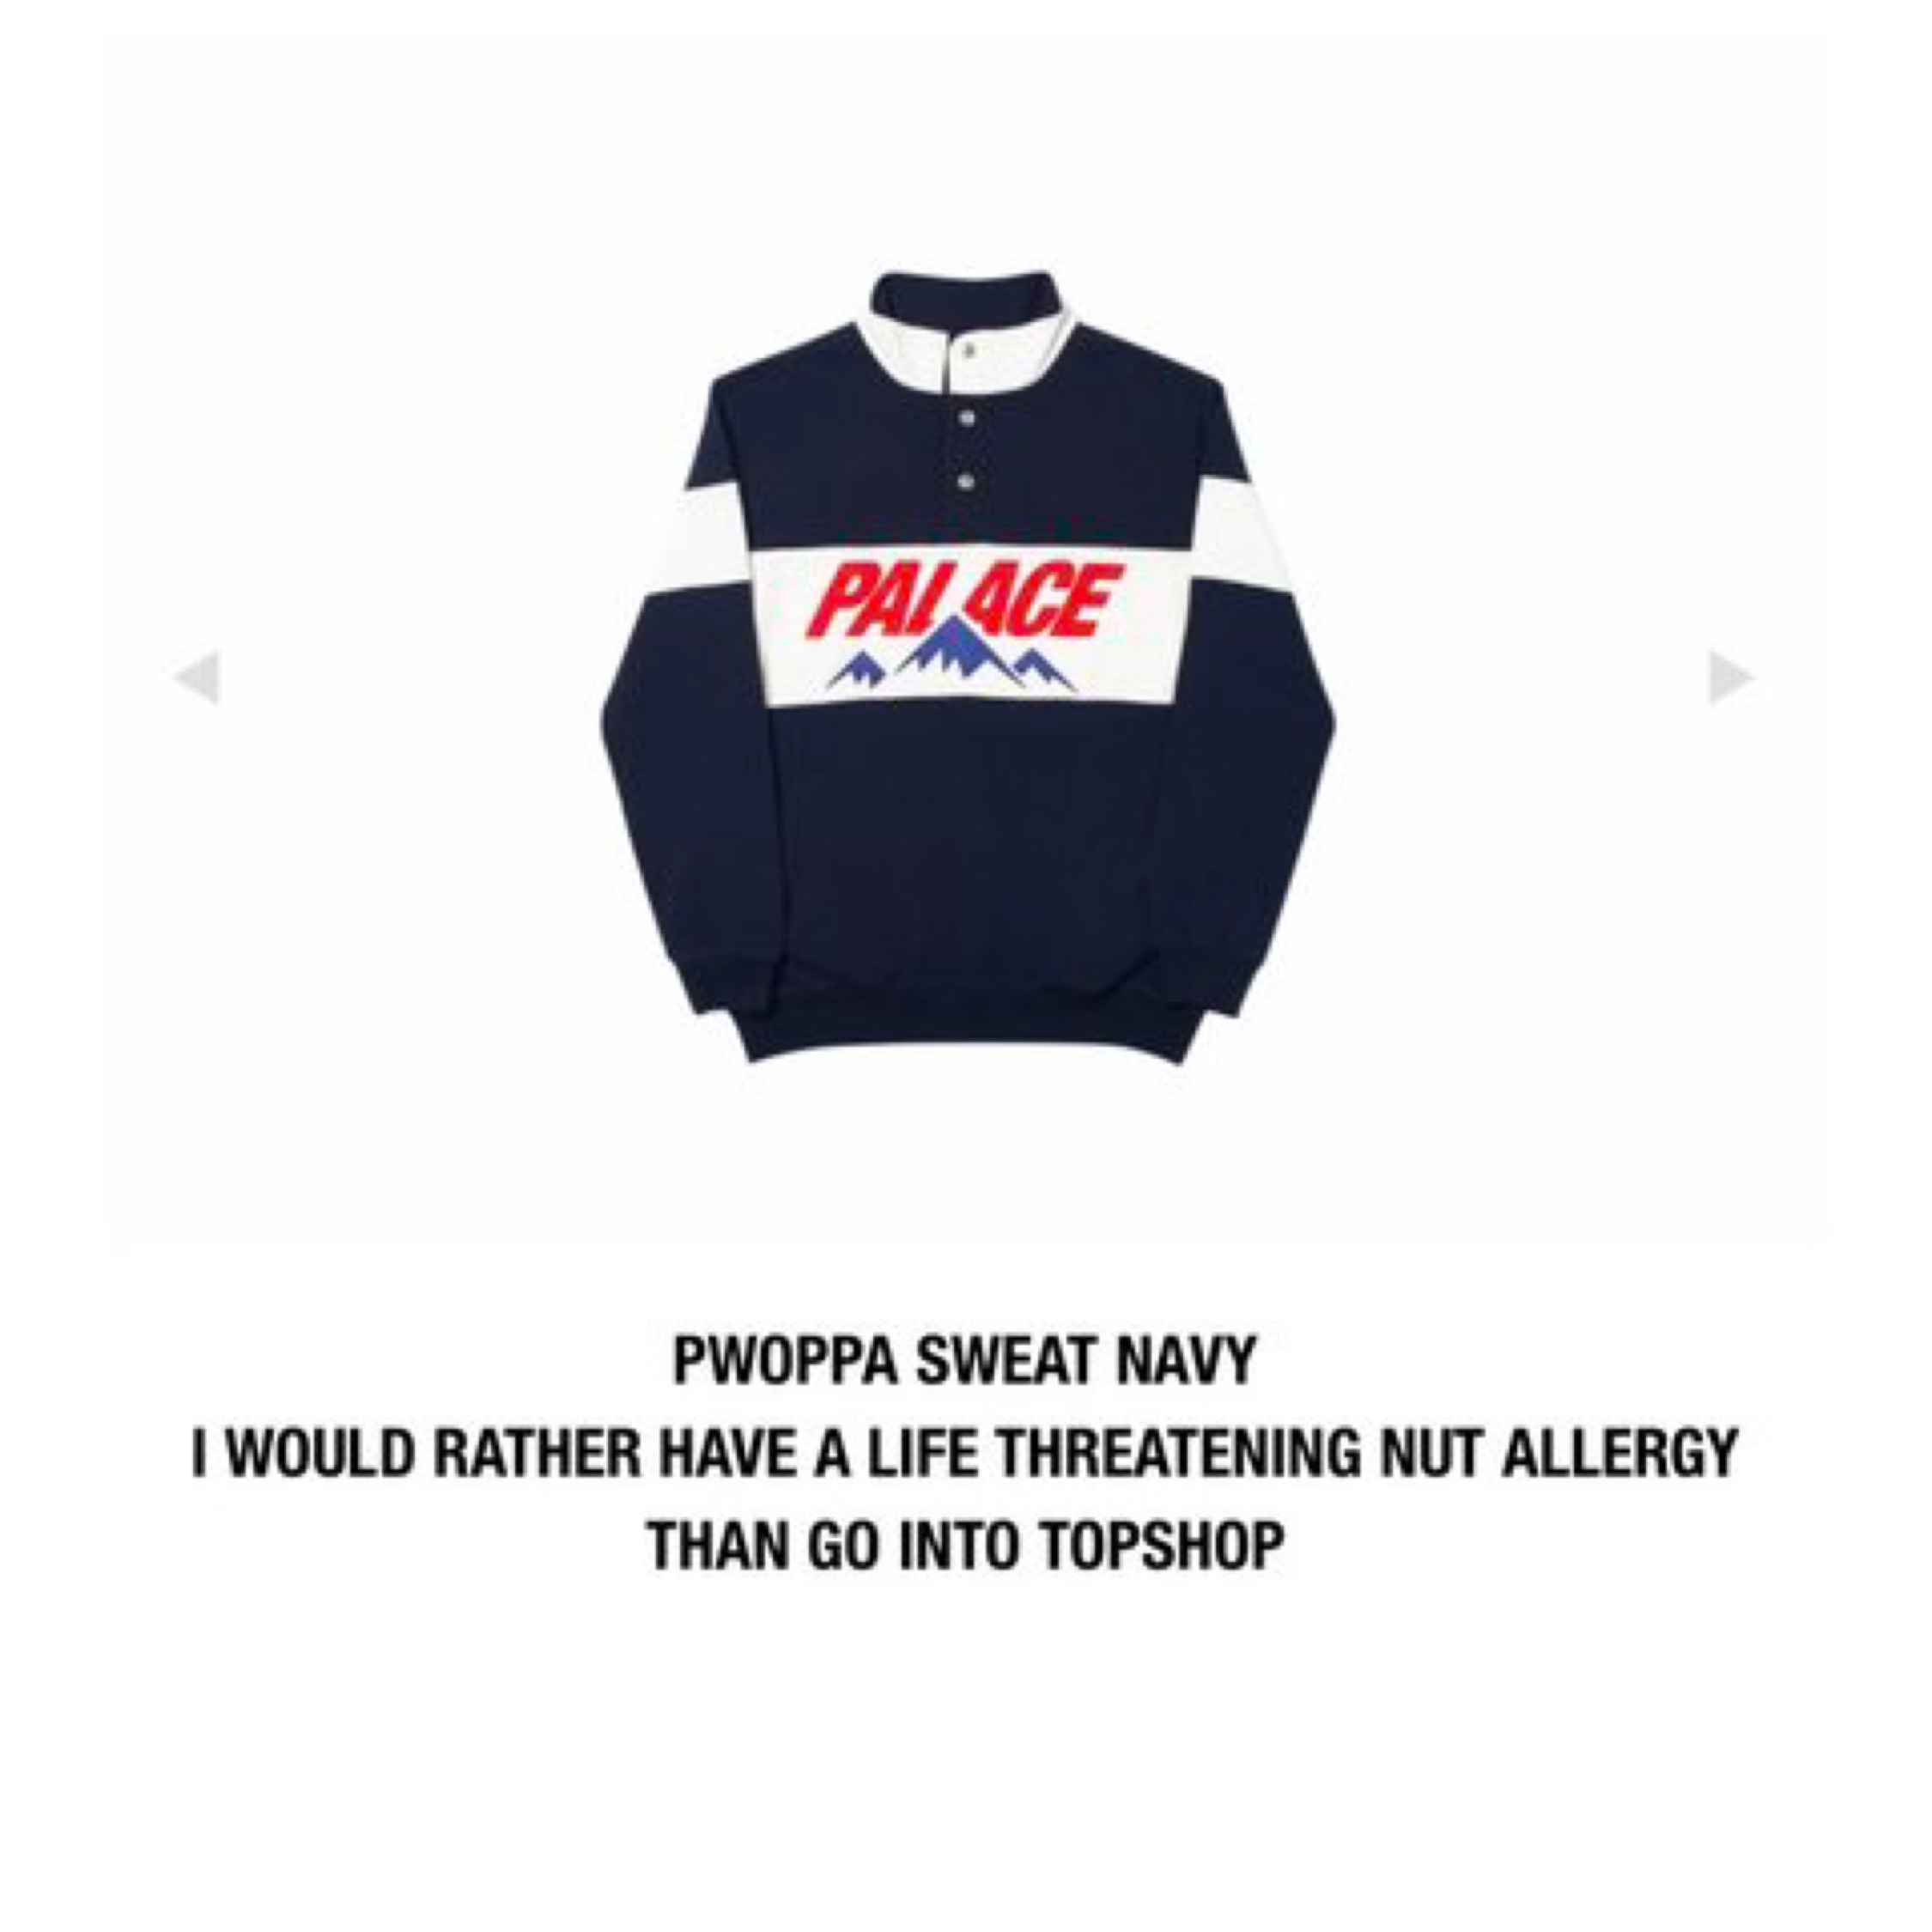 Palace Pwoppa Sweat